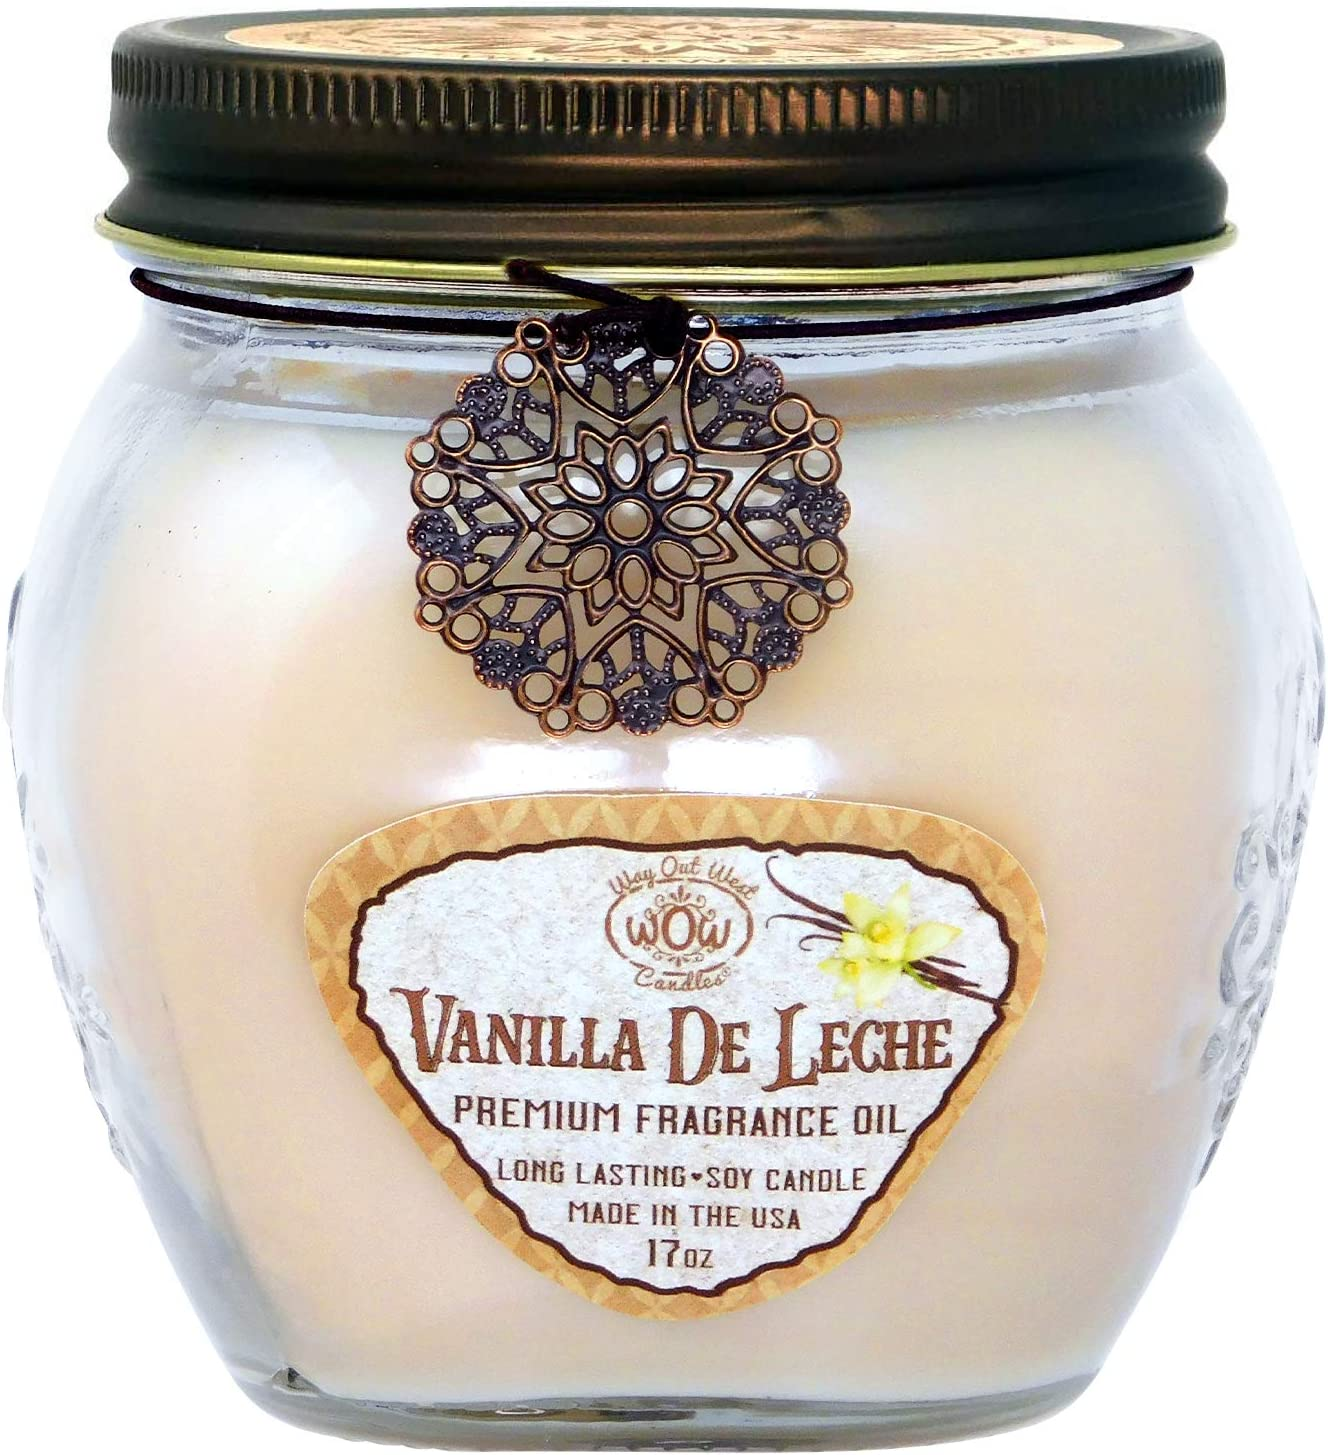 Way Out West Jar Candle with Vanilla de Leche, a Creamy Spiced Vanilla- Large 17 oz Jar Candle- Fragrant, Long Lasting, Soy Wax Blend - A Favorite Gift to Make a House a Home Sweet Home